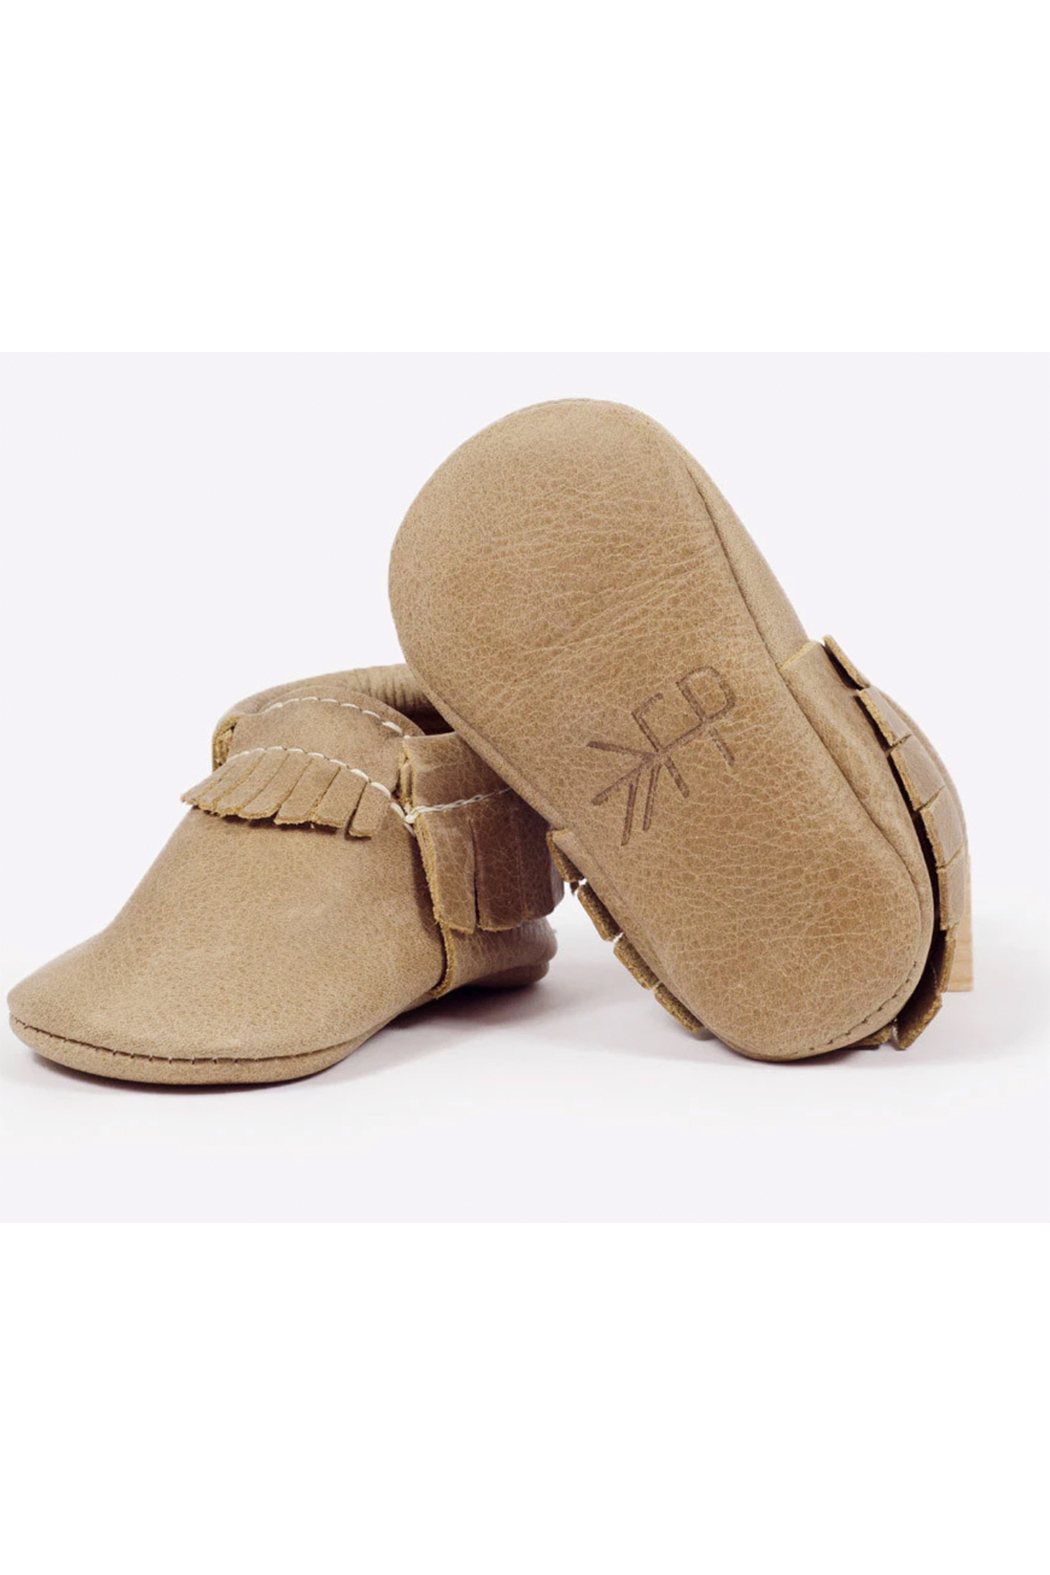 Freshly Picked Weathered Brown Moccasins - Back Cropped Image